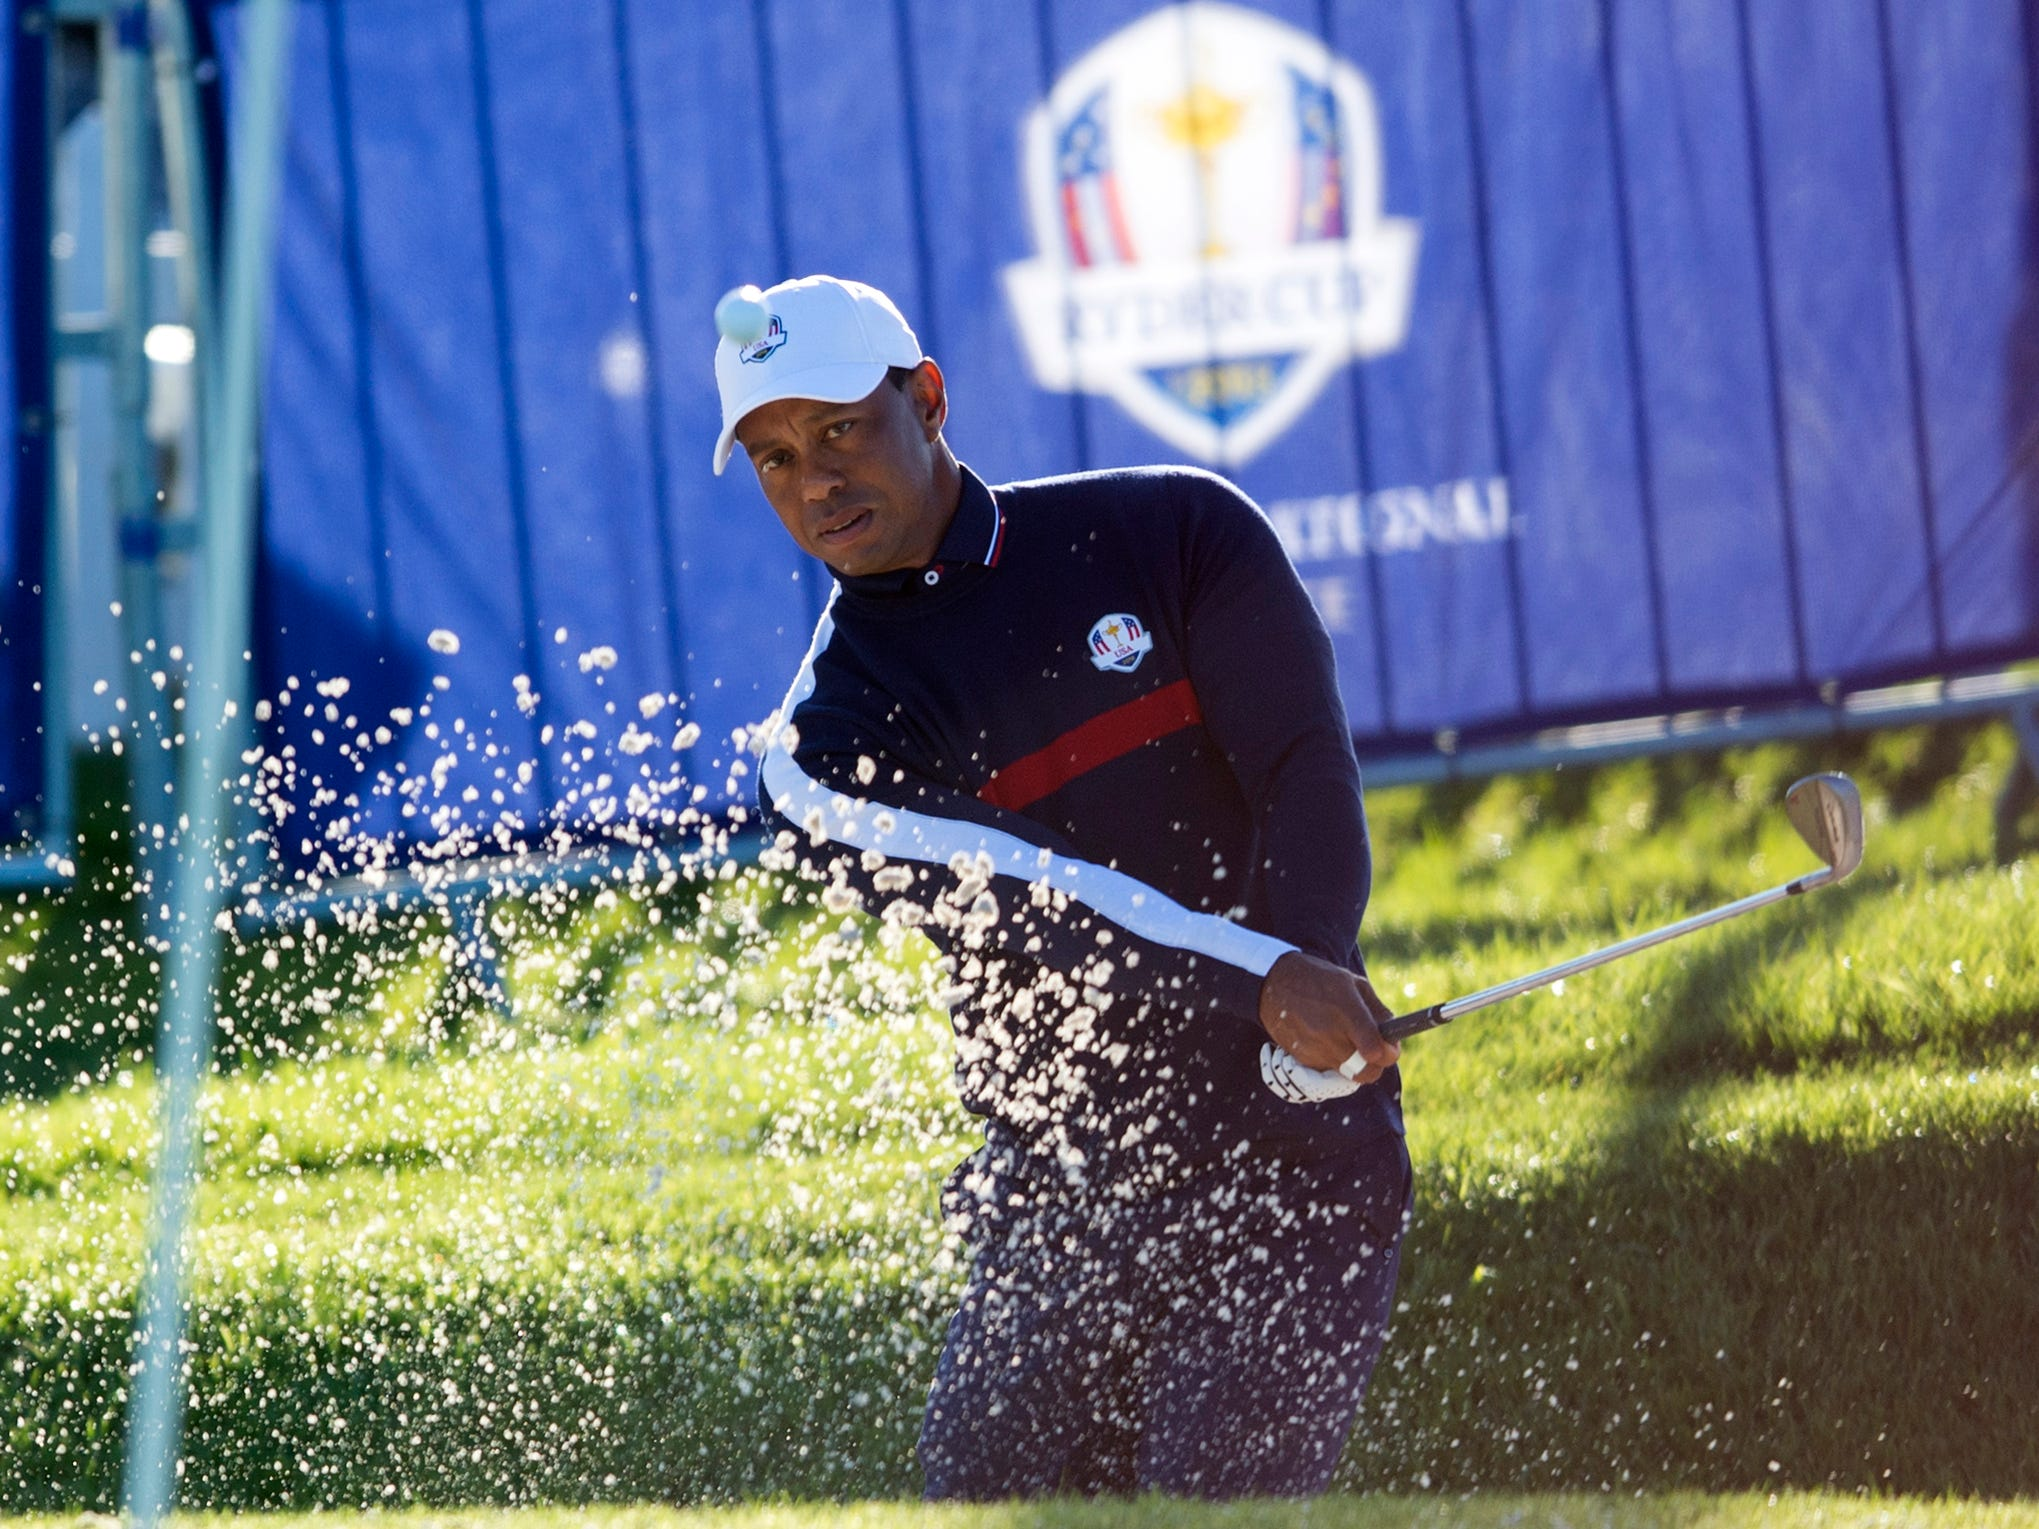 Tiger Woods plays from a bunker in the practice area during a Ryder Cup practice round.